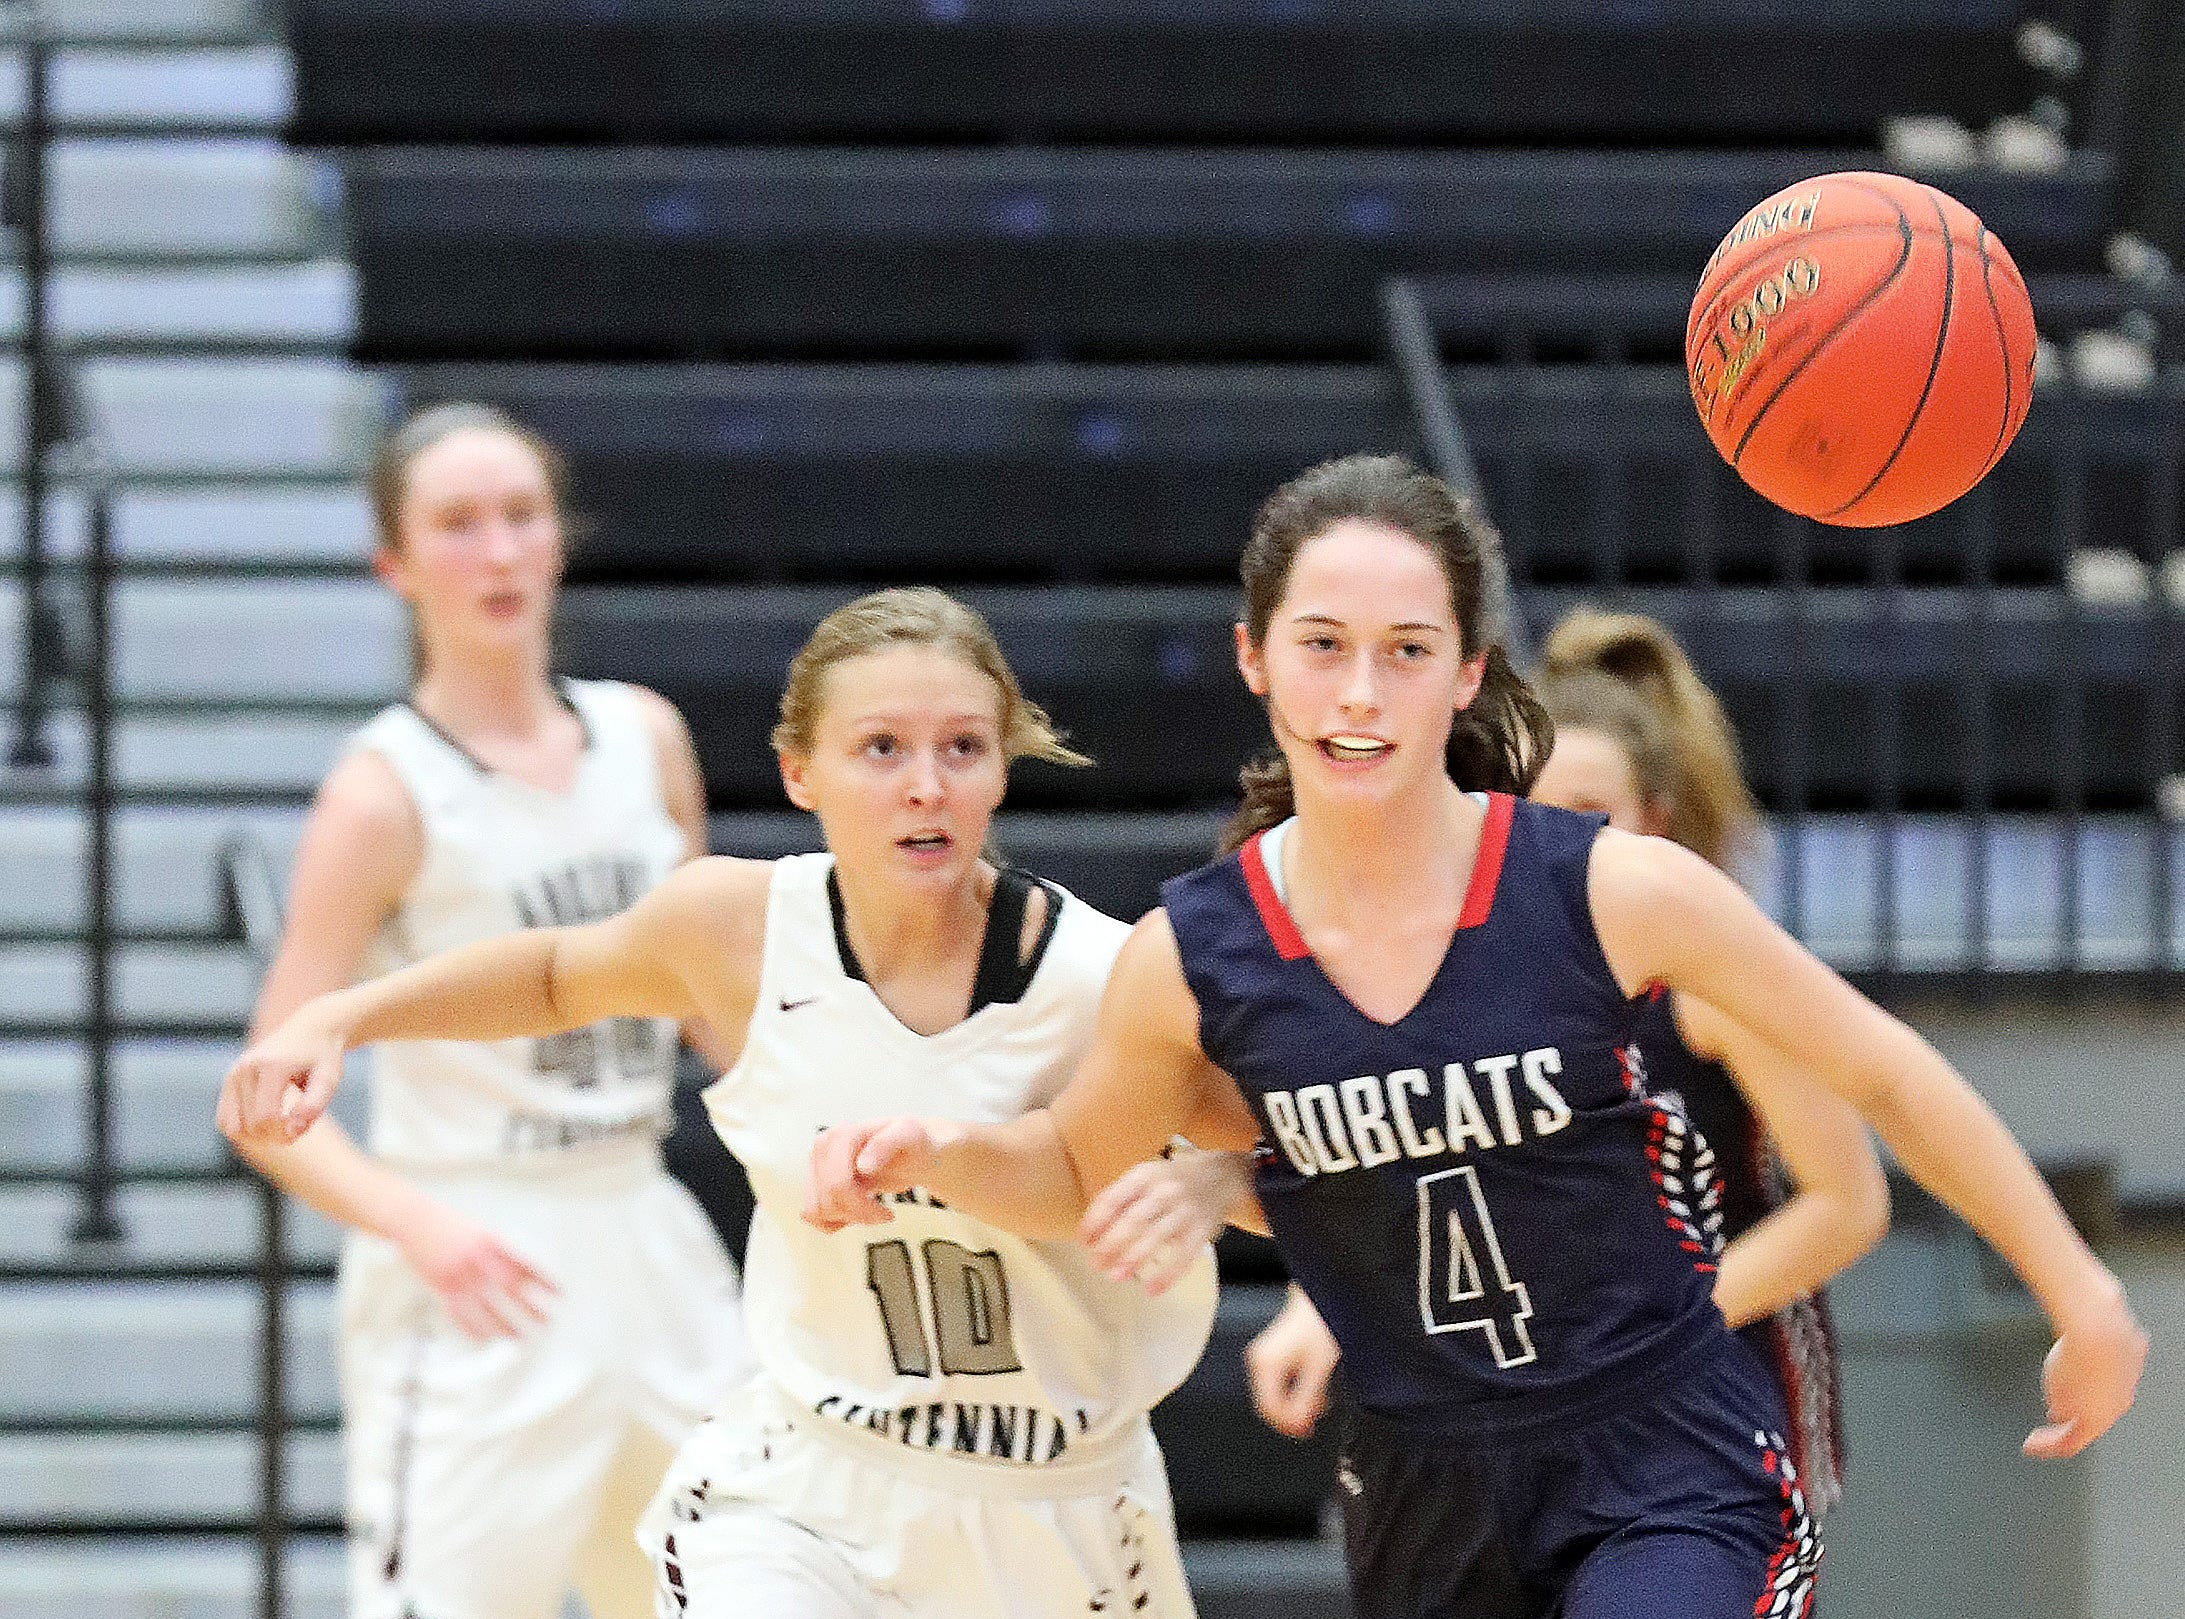 Ankeny Centennial senior Lily King and Marshalltown junior Erica Johnson chase the loose ball as the Marshalltown Bobcats compete against the Ankeny Centennial Jaguars in high school girls basketball on Tuesday, Jan. 8, 2019 at Ankeny Centennial High School.